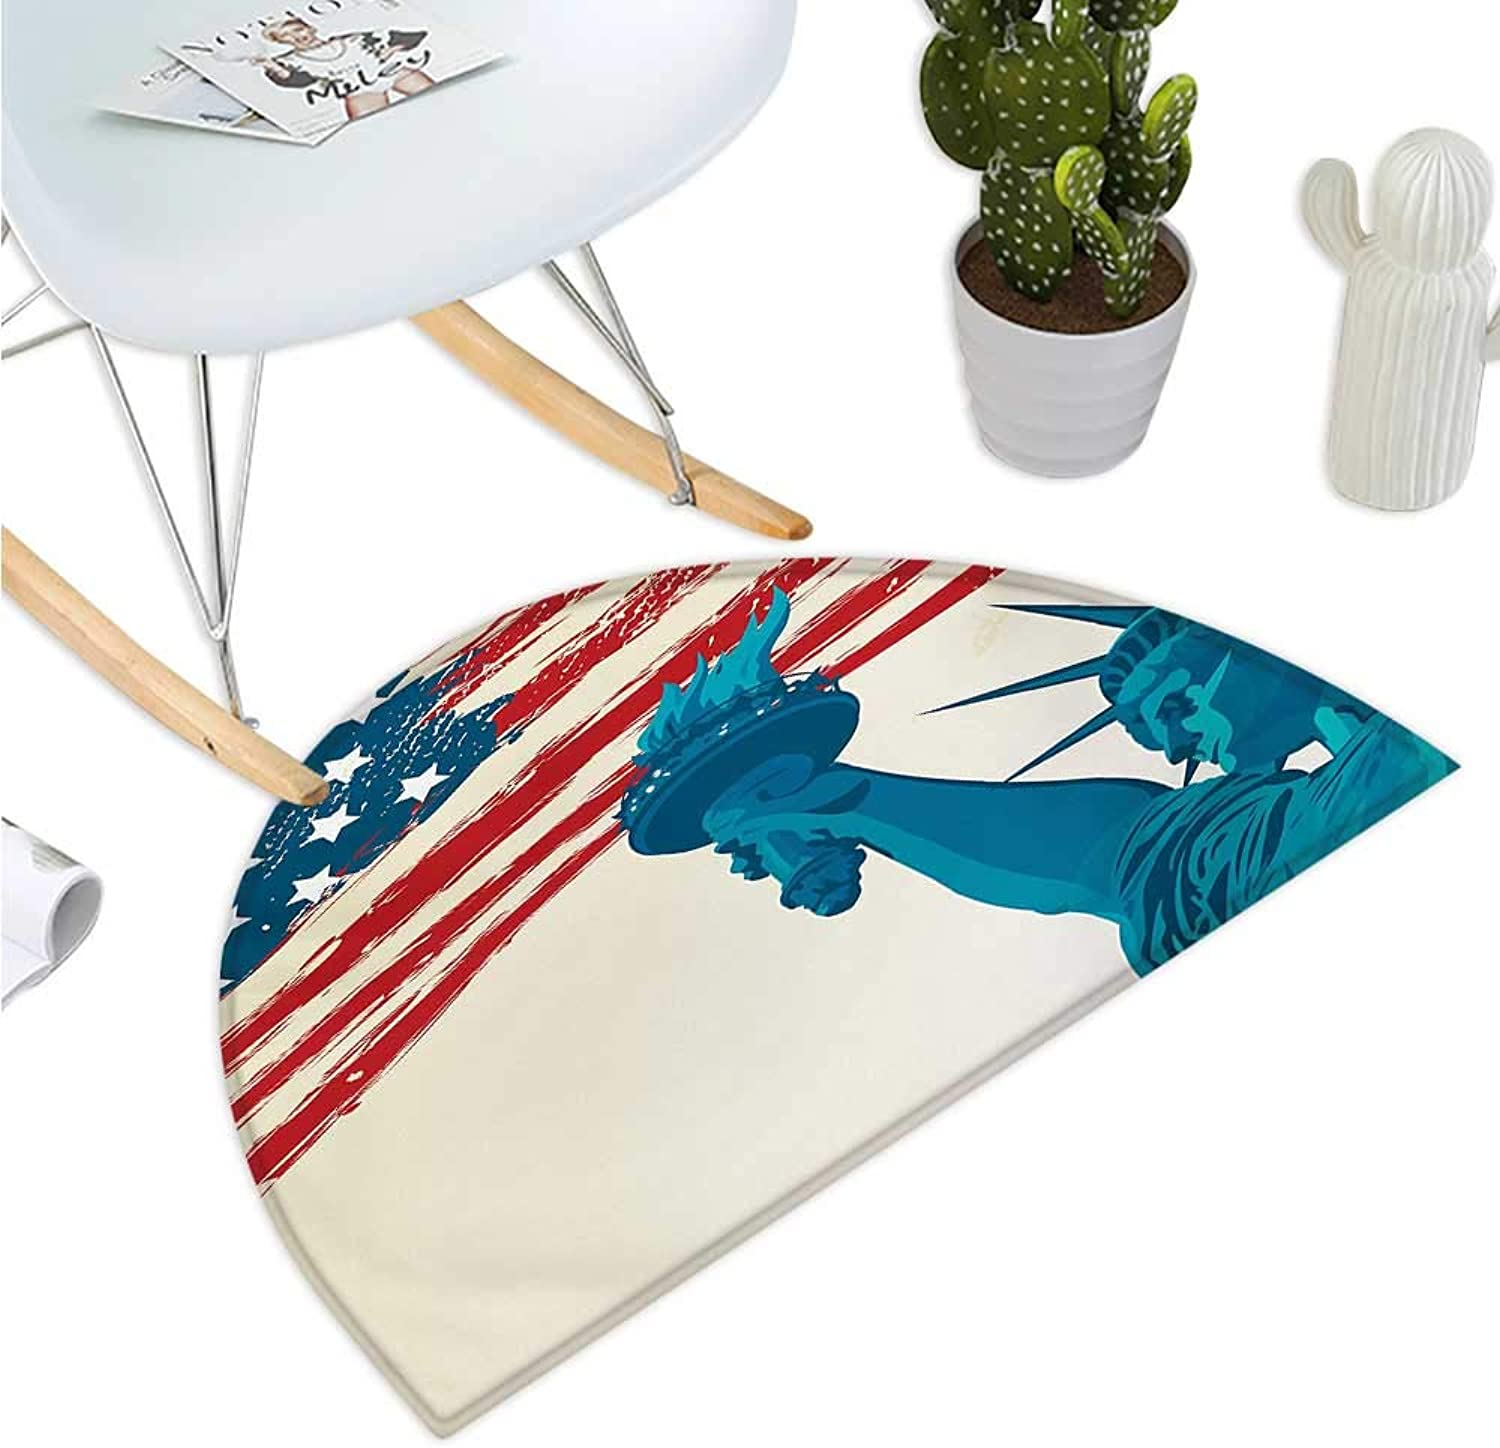 American Flag Semicircle Doormat Statue of Liberty Form Over States Flag Murky Lines Freedom Symbol Artwork Halfmoon doormats H 35.4  xD 53.1  Multicolor